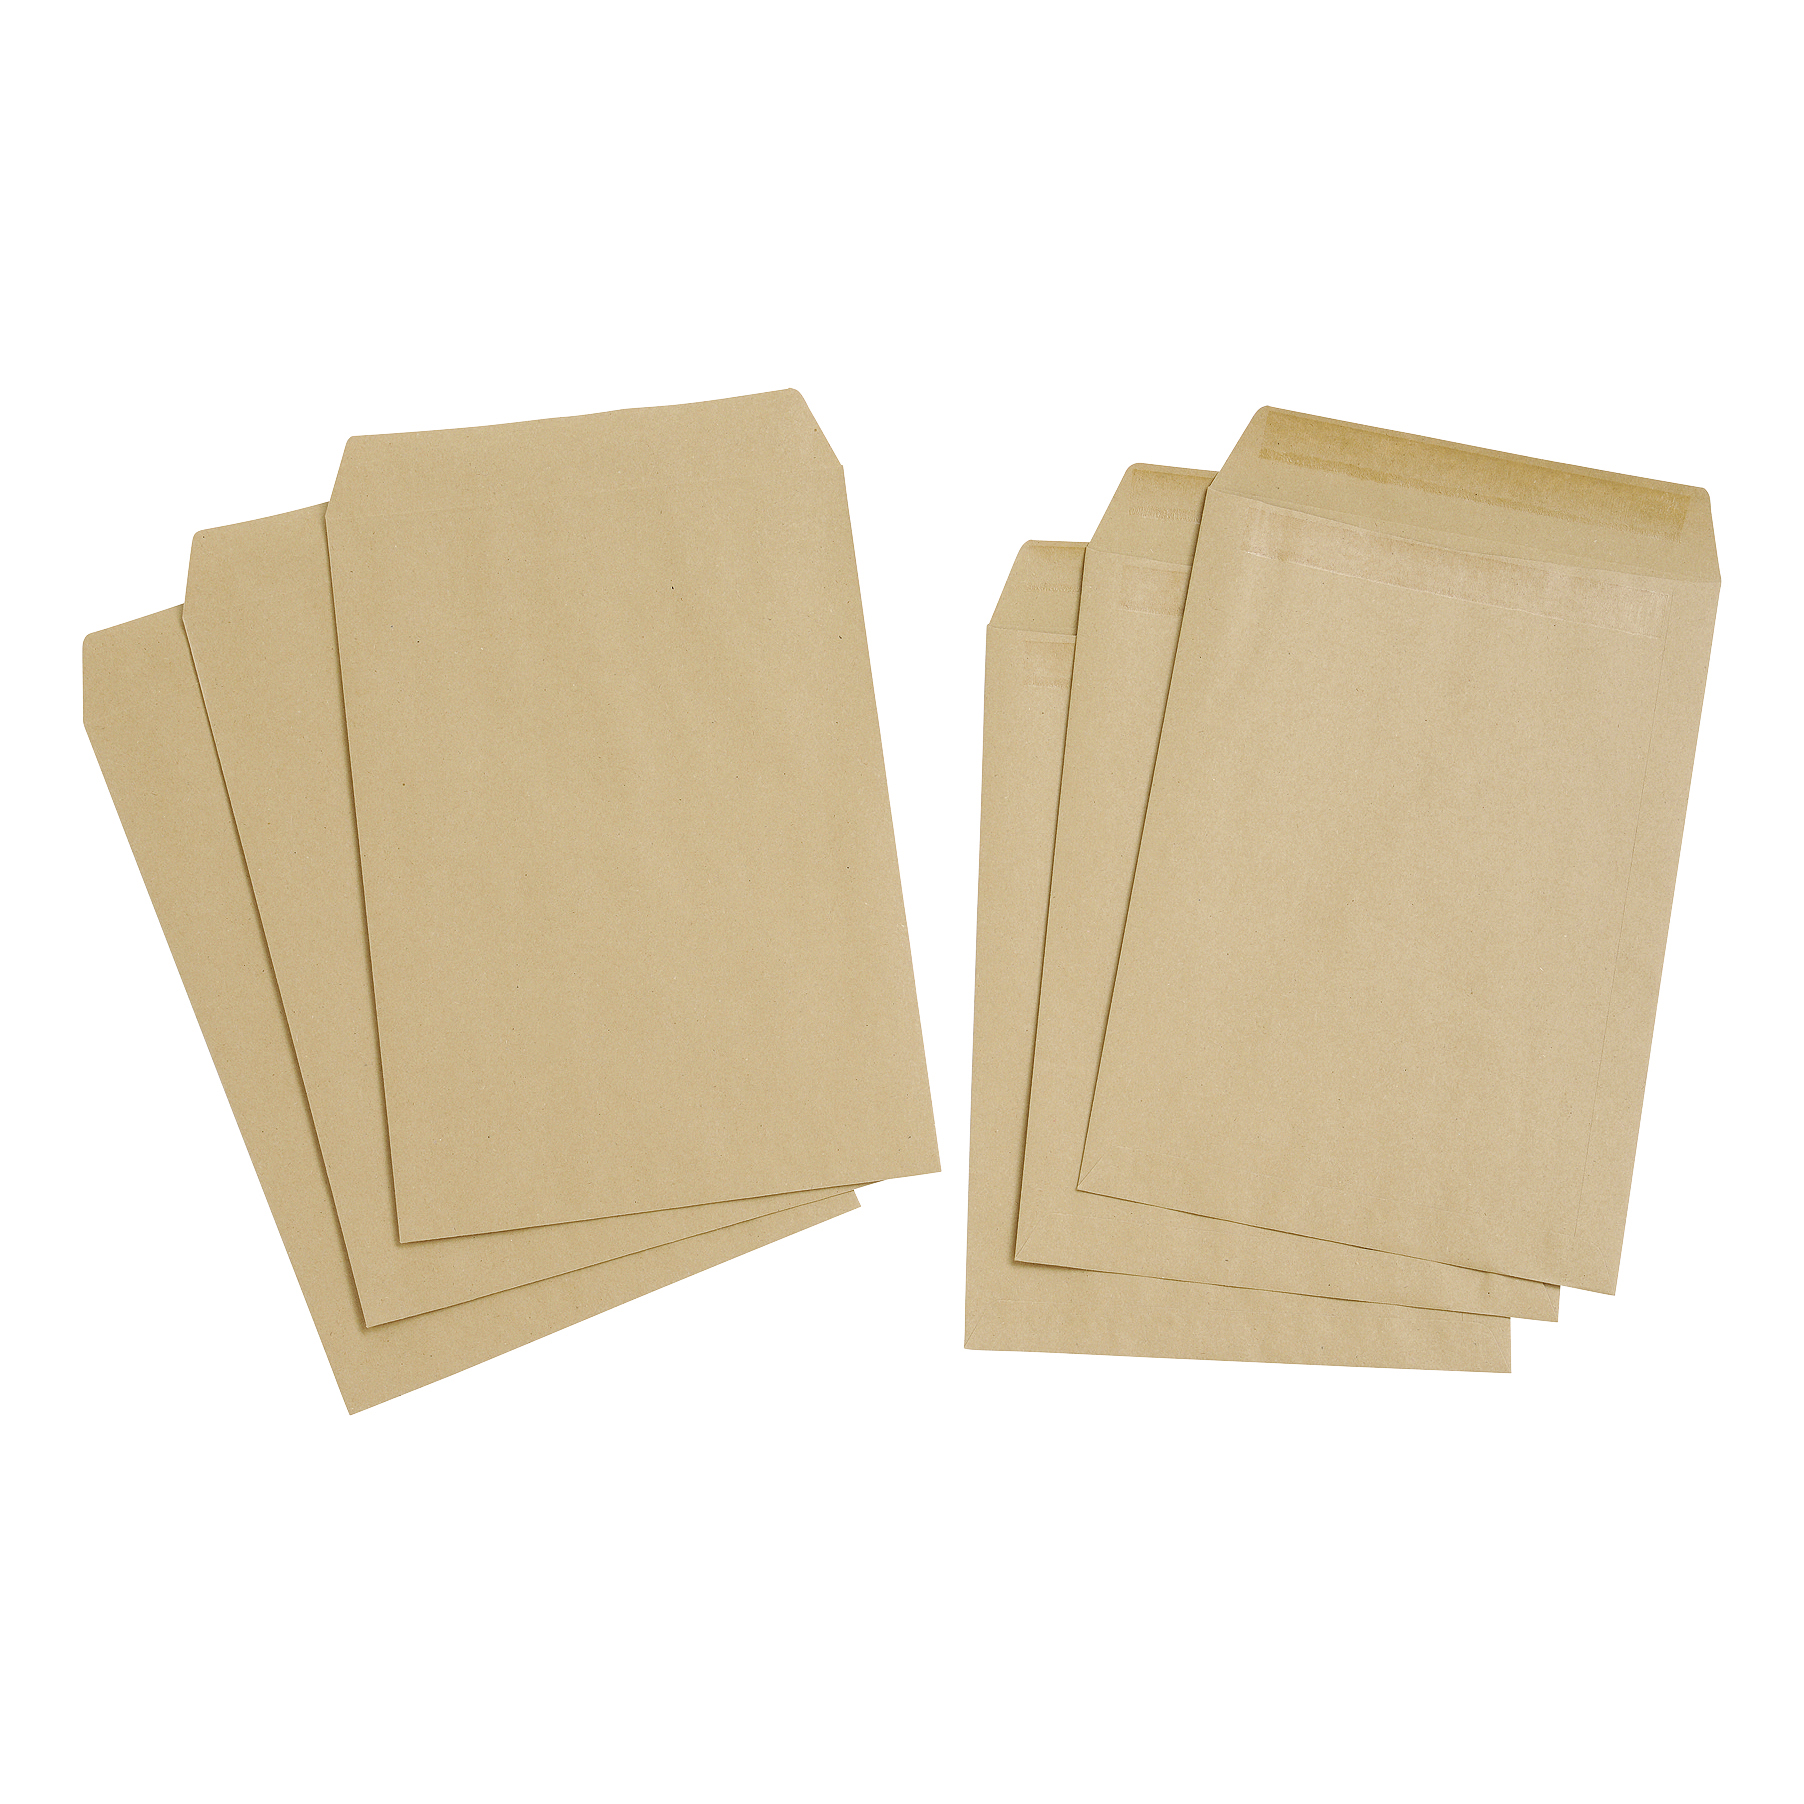 Everyday Envelopes 5 Star Value Envelope C4 Pocket Self Seal 80gsm Plain Manilla Pack 250